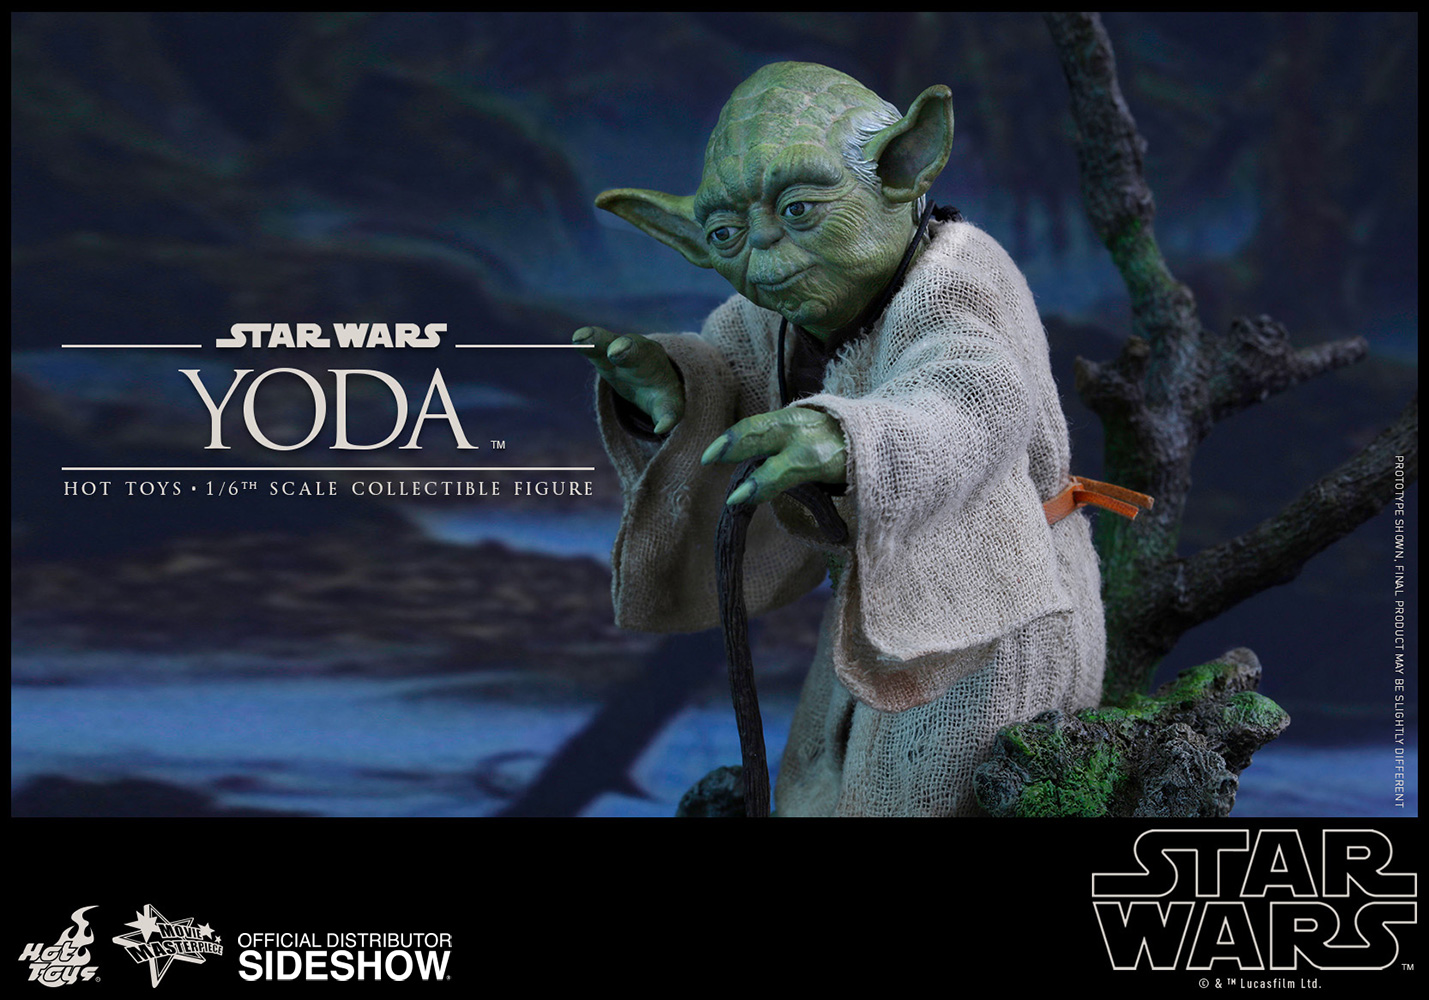 Star wars yoda sixth scale figure by hot toys sideshow collectibles